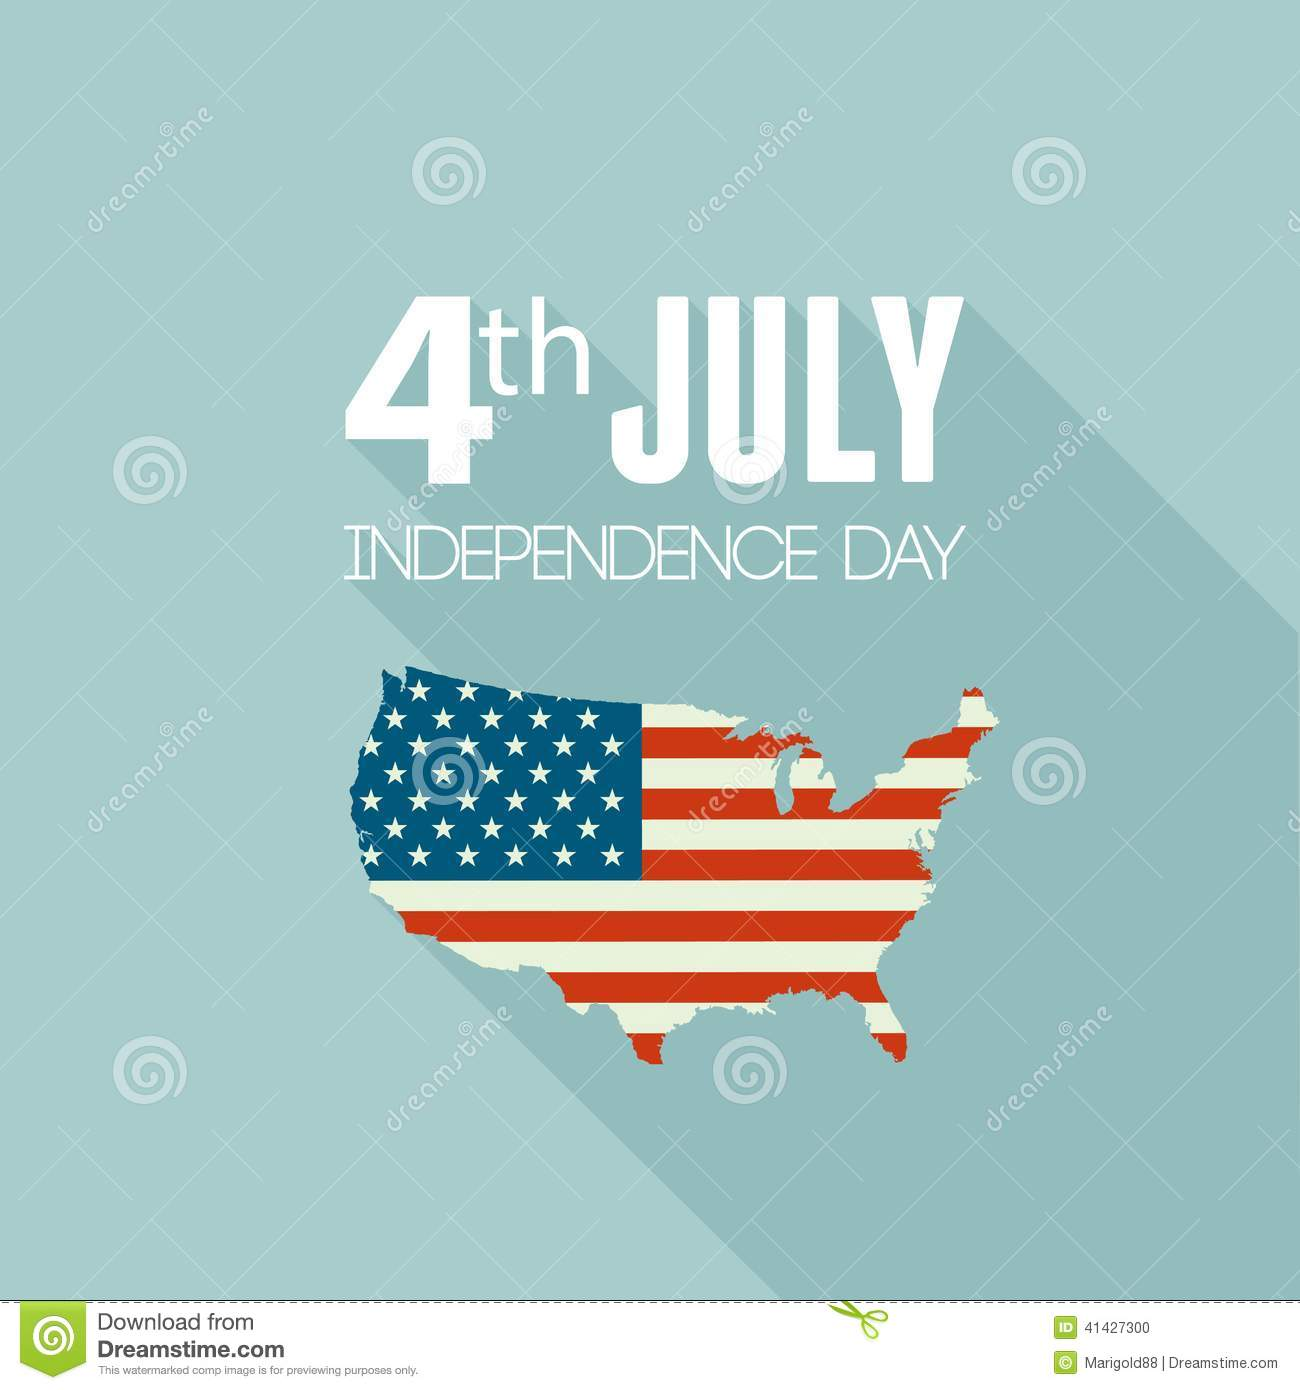 essay american independence day Independence day is regarded as the birthday of the united states as a free and independent nation most americans simply call it the fourth of july, on which date it always falls.